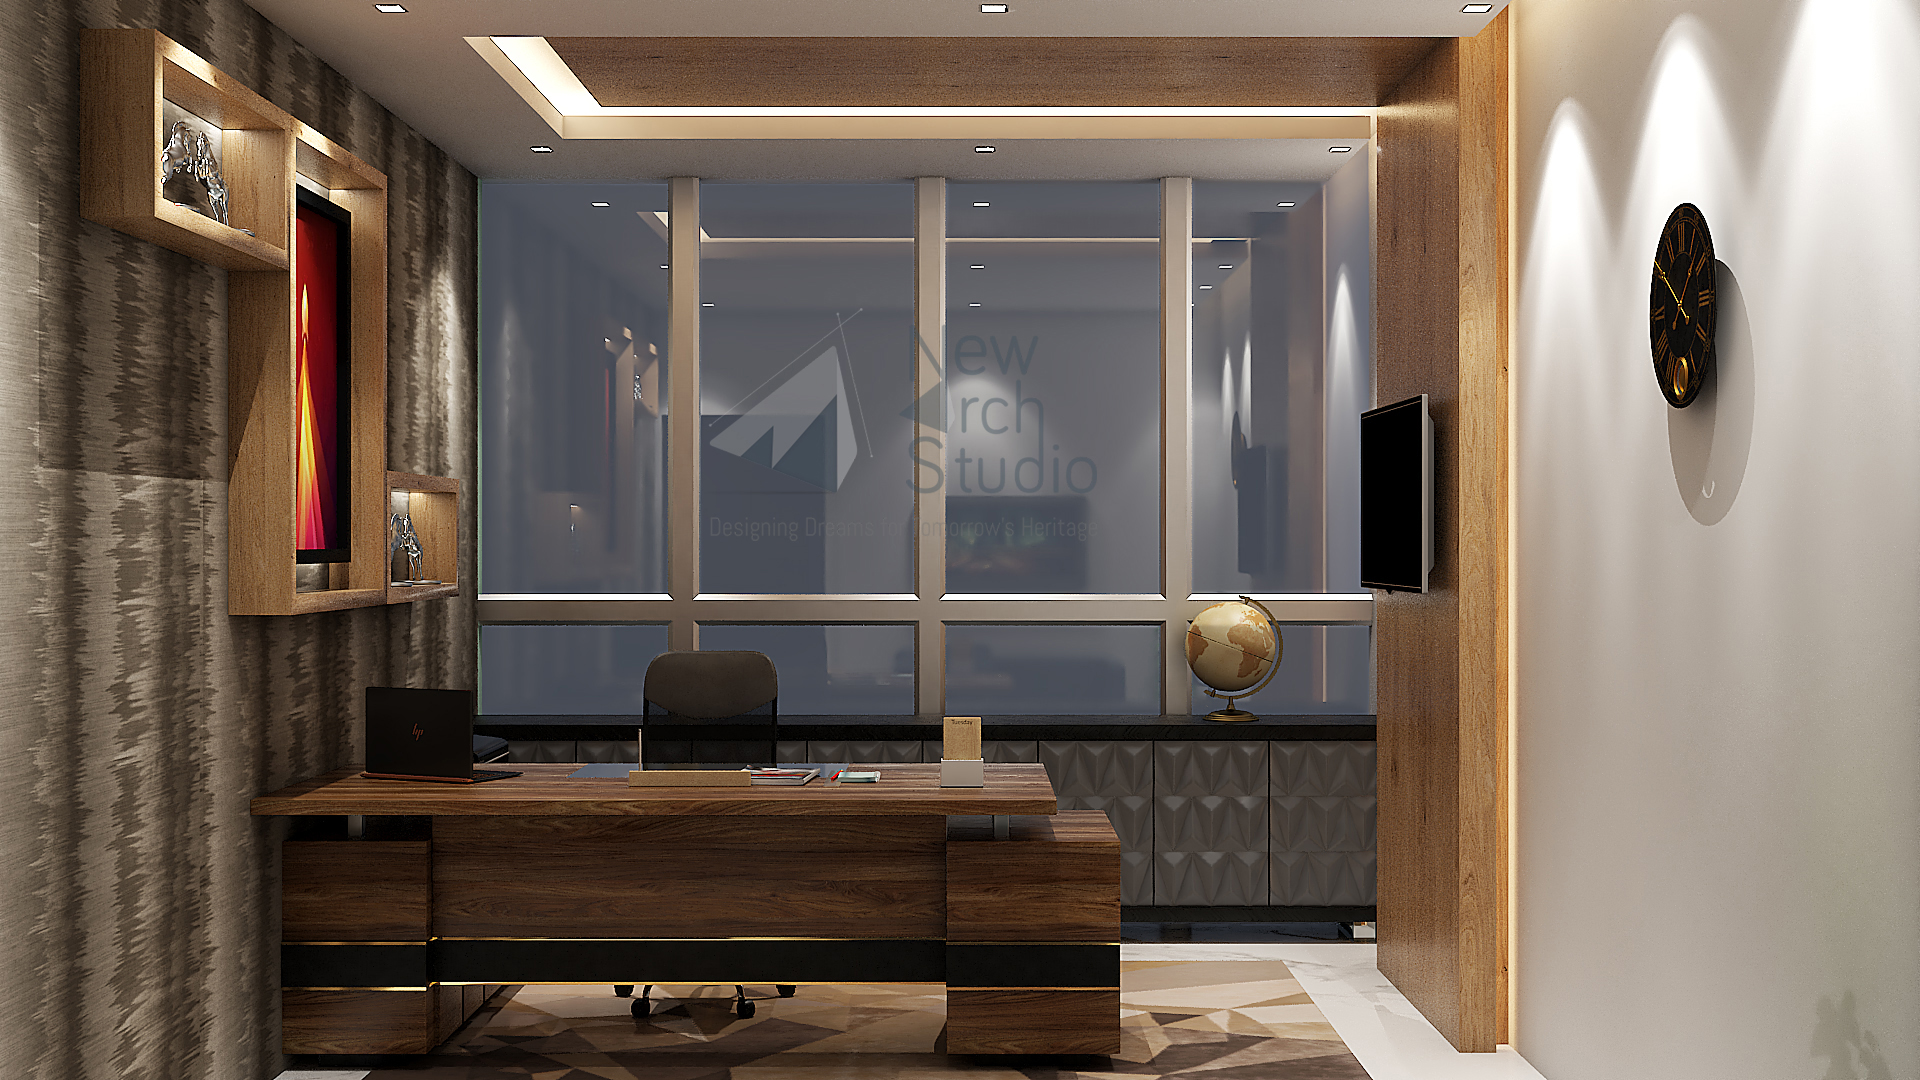 Office Interior Design For I-Thum Office Noida Sec-62 Done By New Arch Studio